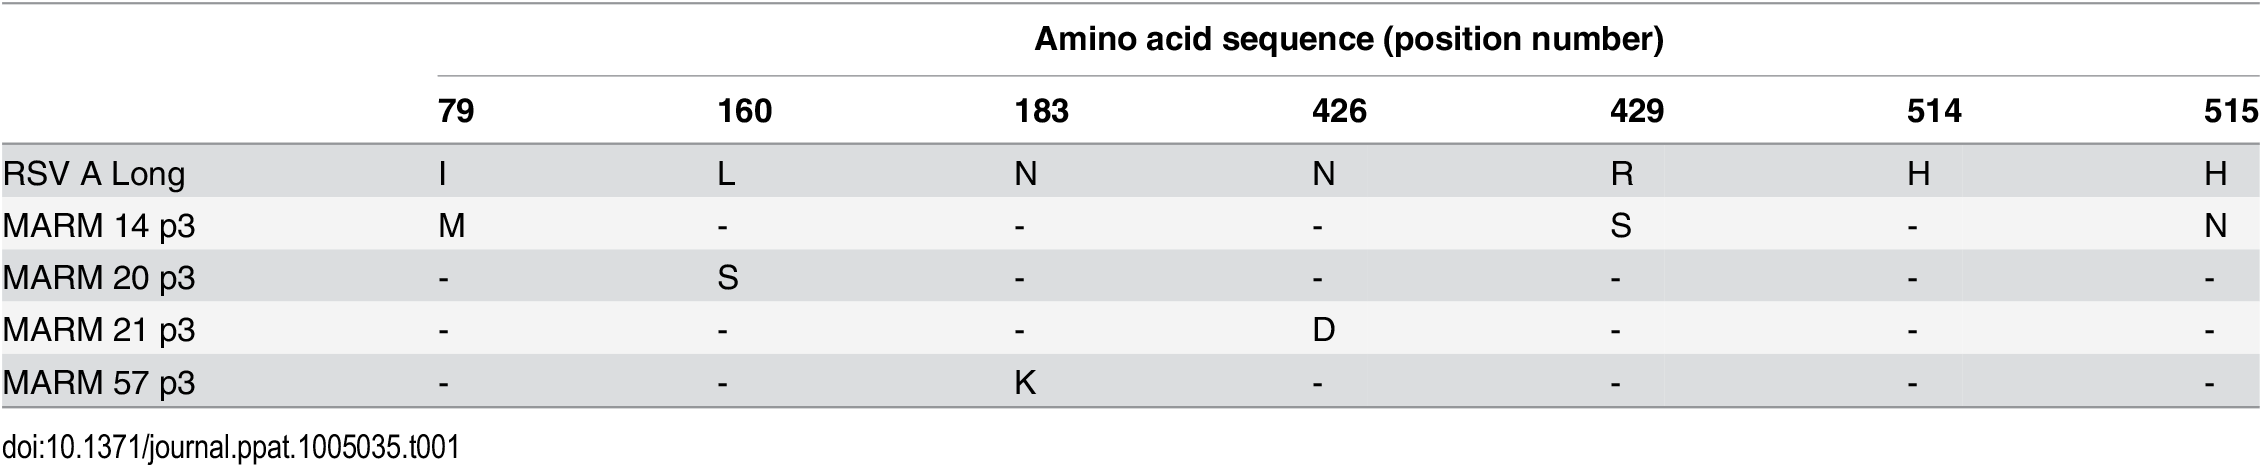 Amino acid changes in F protein of AM14 MARMs.